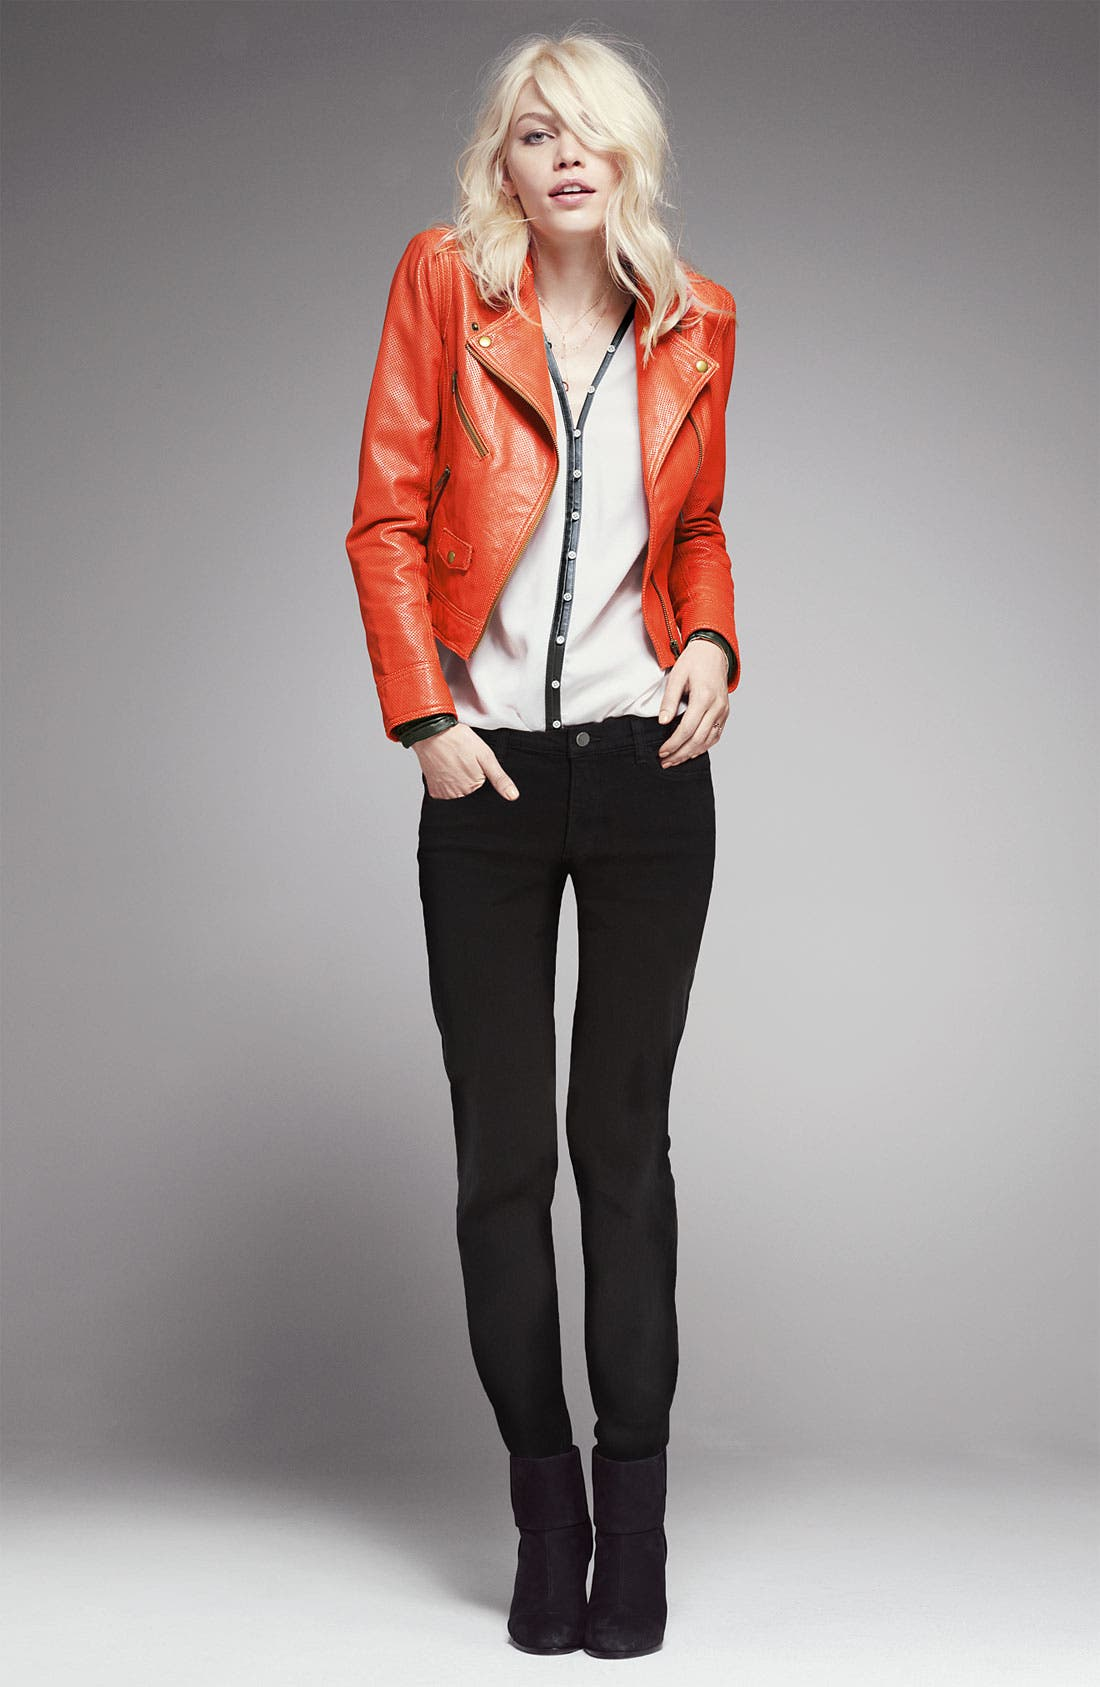 Alternate Image 1 Selected - Truth & Pride Jacket, Elizabeth and James Blouse & Paige Pants